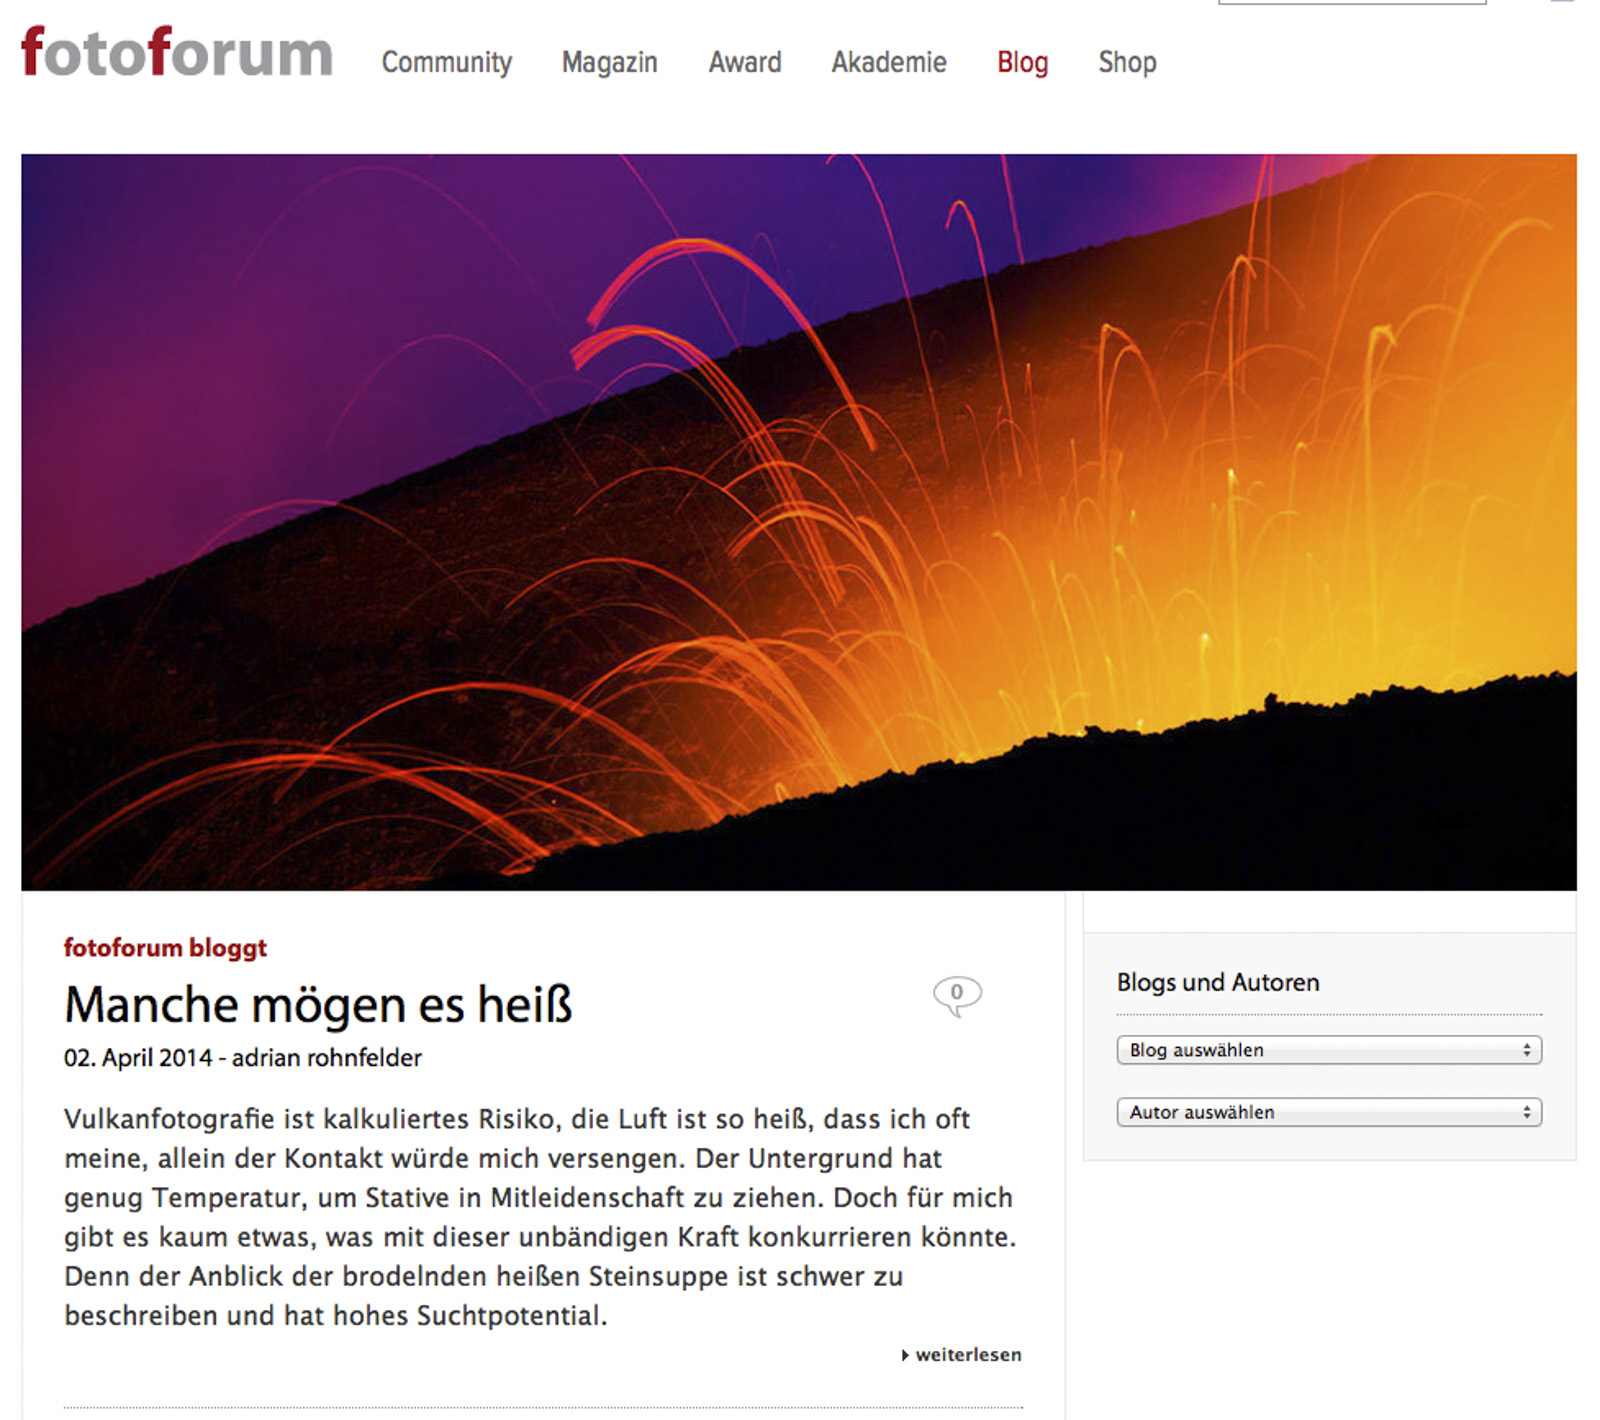 fotoforum Blog